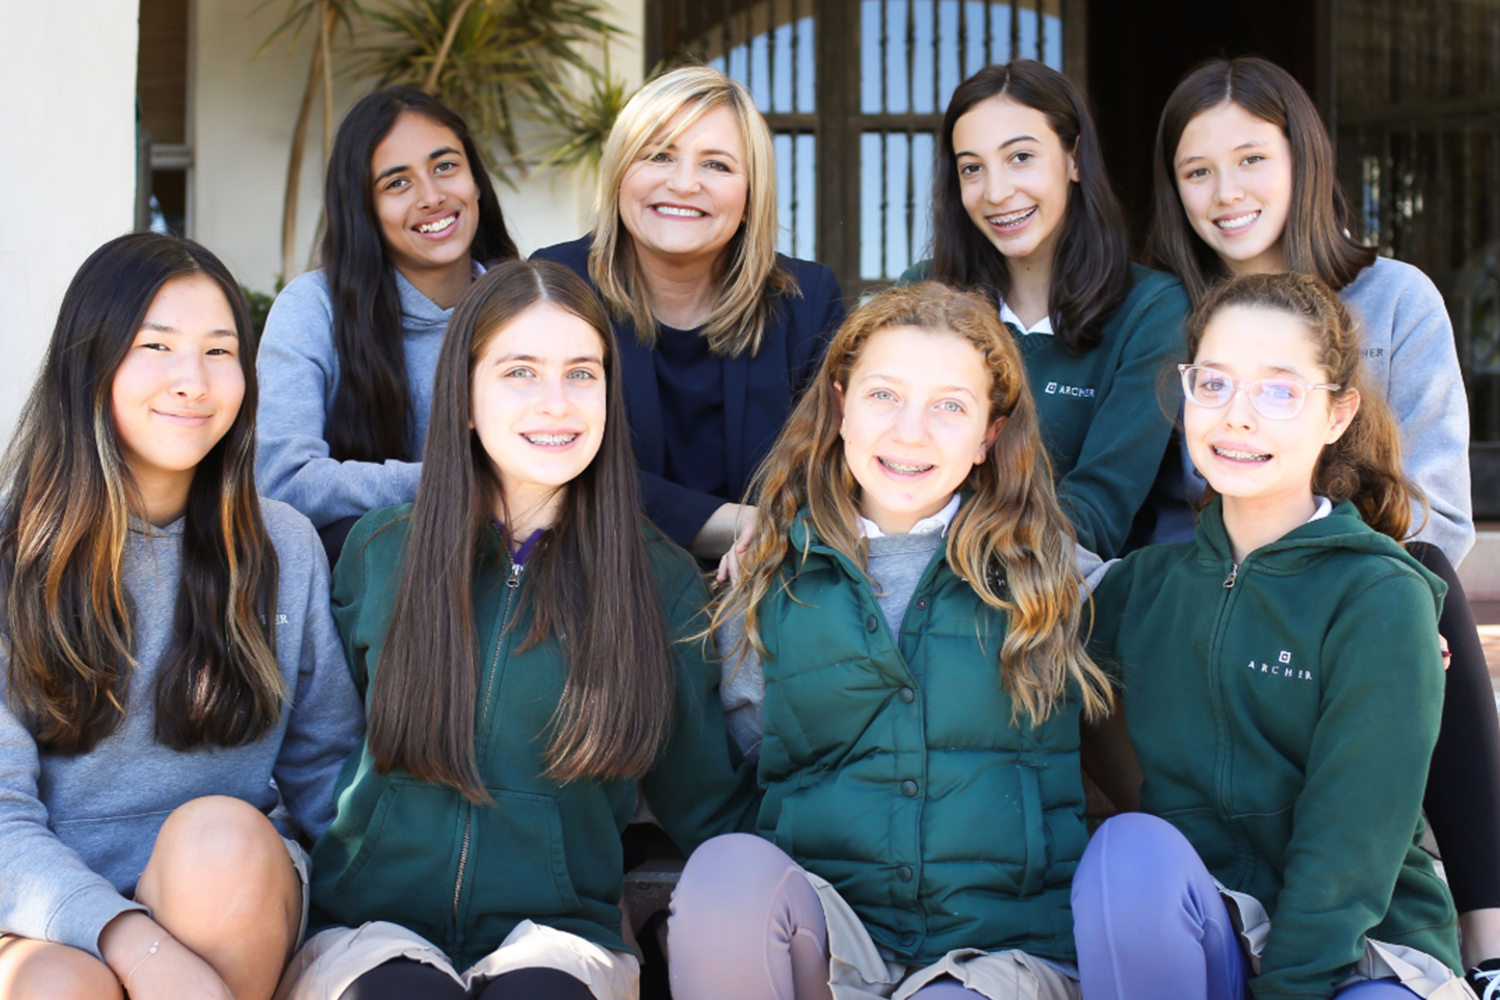 Eighth graders Uma Bajaj, Karen Pavliscak, Daisy Marmur, Genevieve Sieve, Sydney Frank, Juliet Katz, Zoe Woolenberg and Margaret Morris sit with Pavliscak on the front steps. Pavliscak is currently serving as Middle School director and Assistant Head of School and will assume the role of Associate Head at the beginning of July.